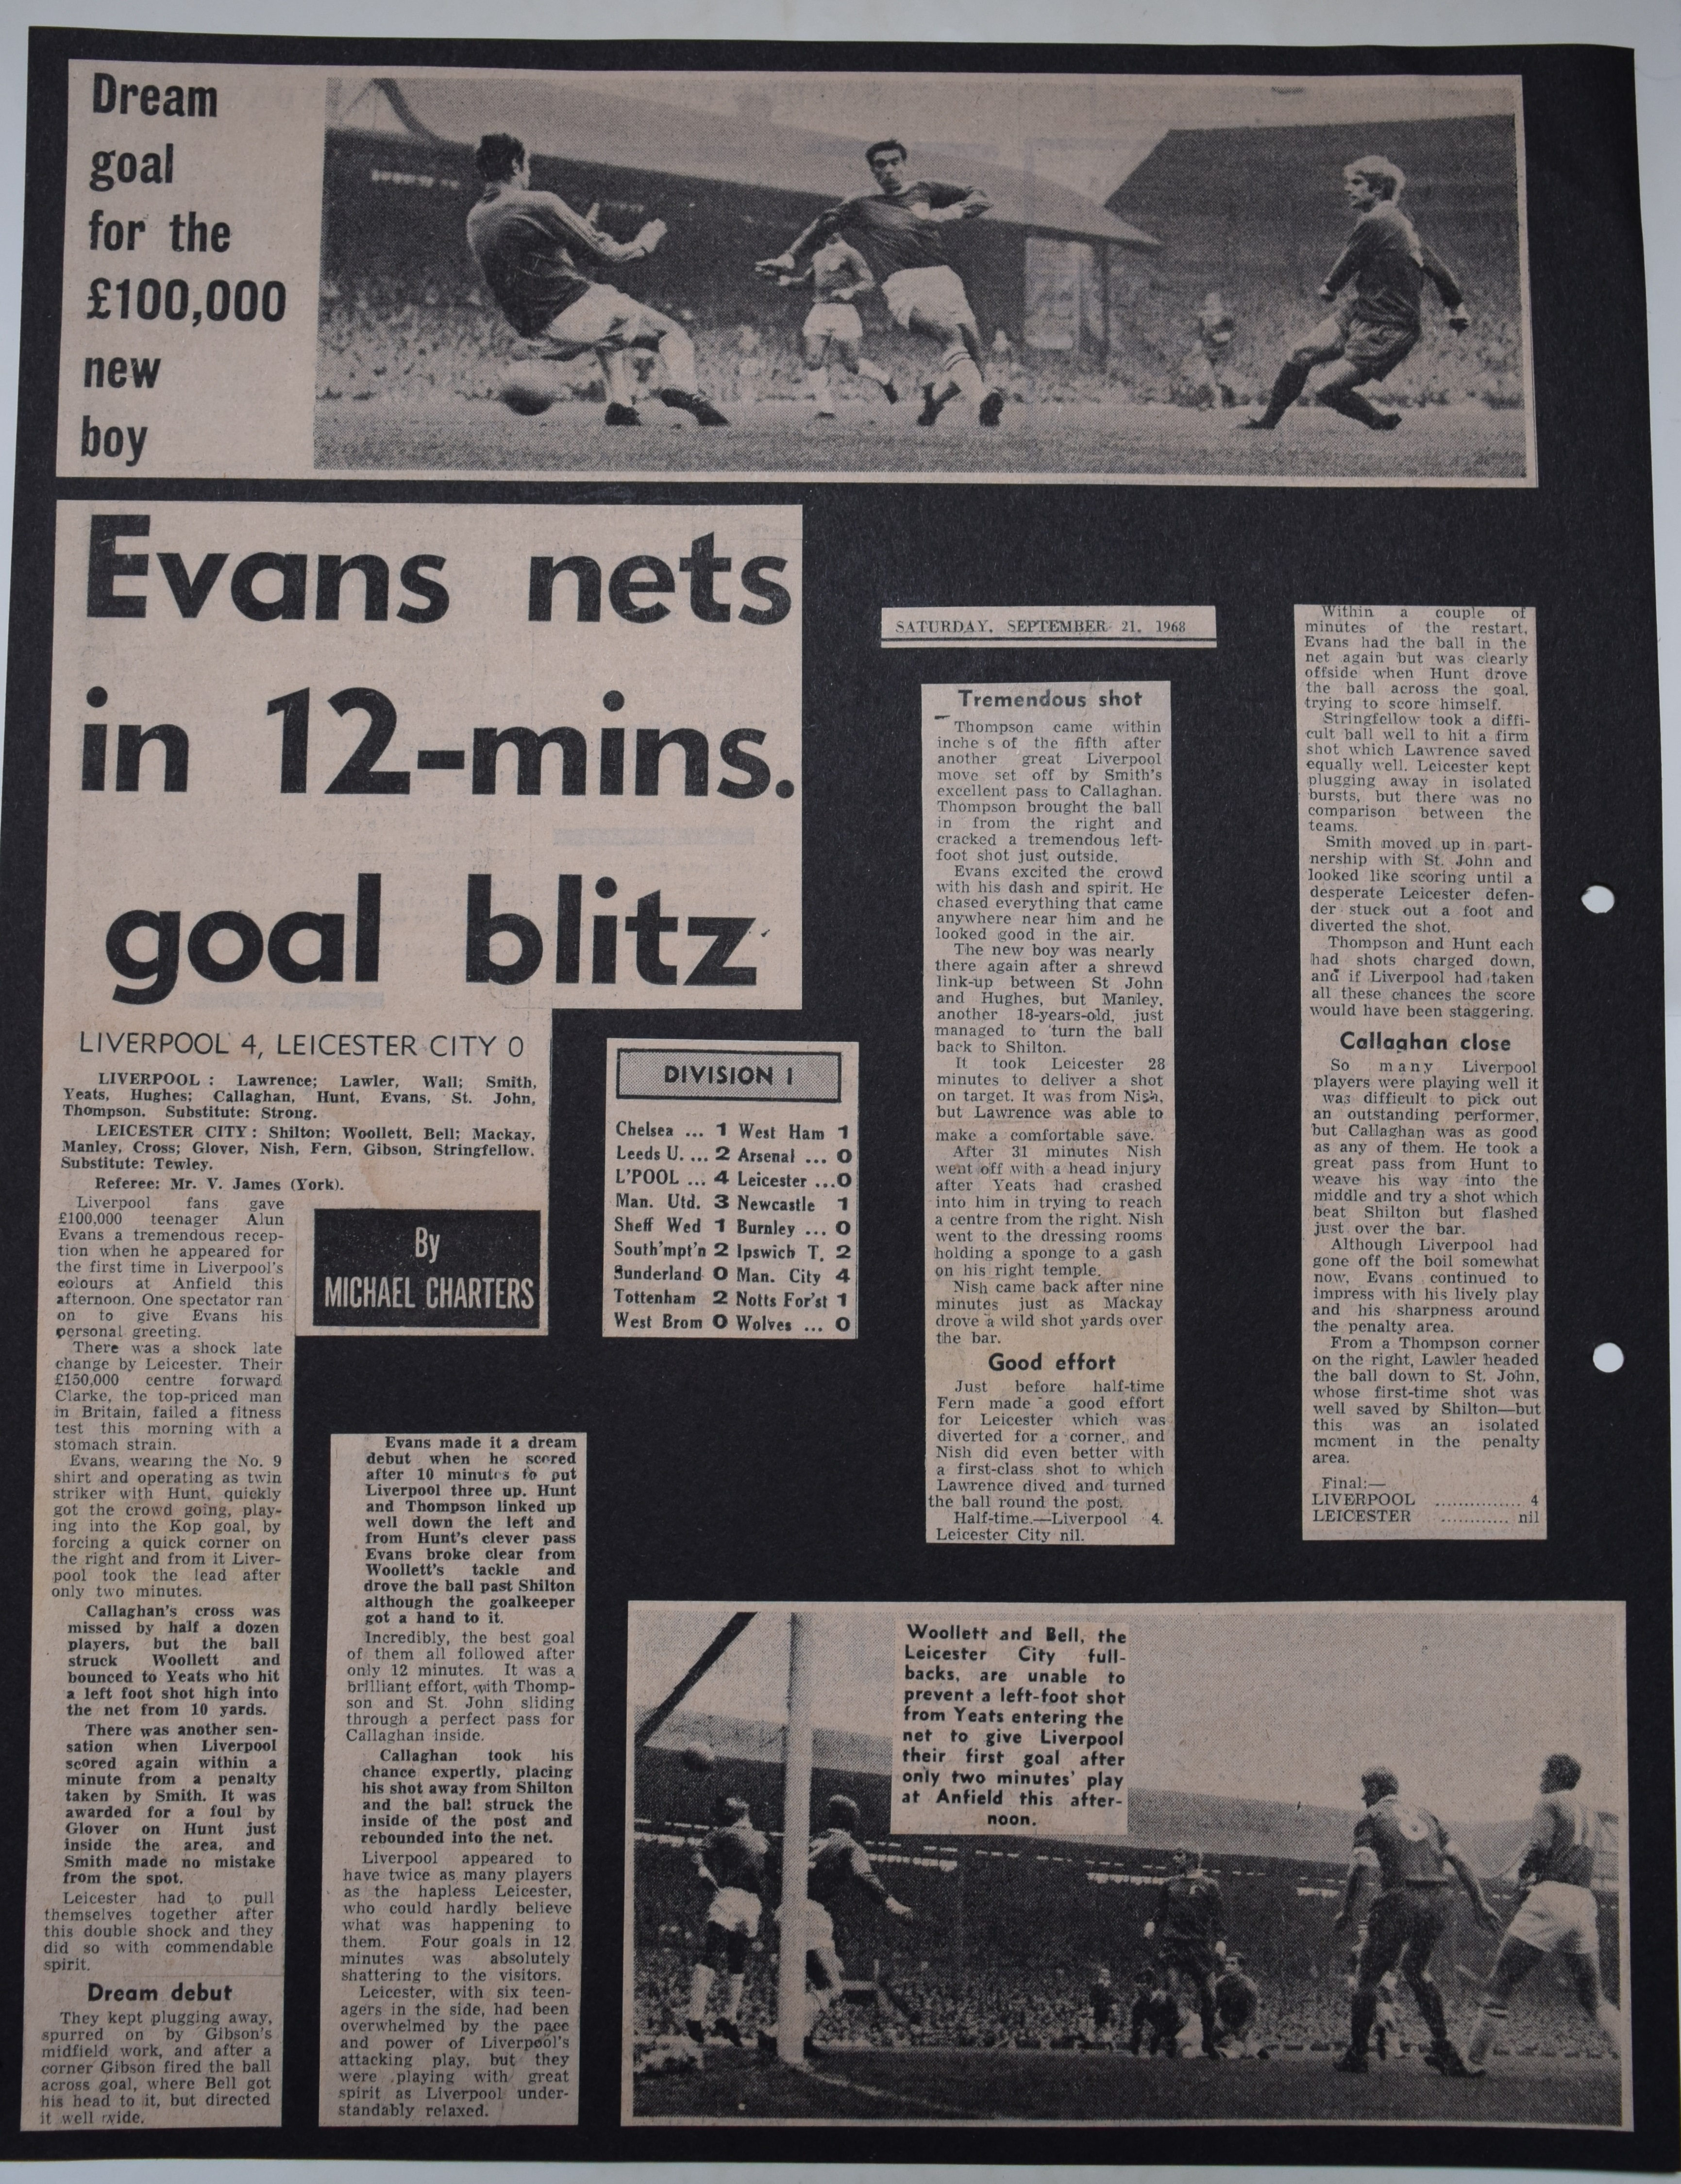 Evans nets in 12 minute blitz